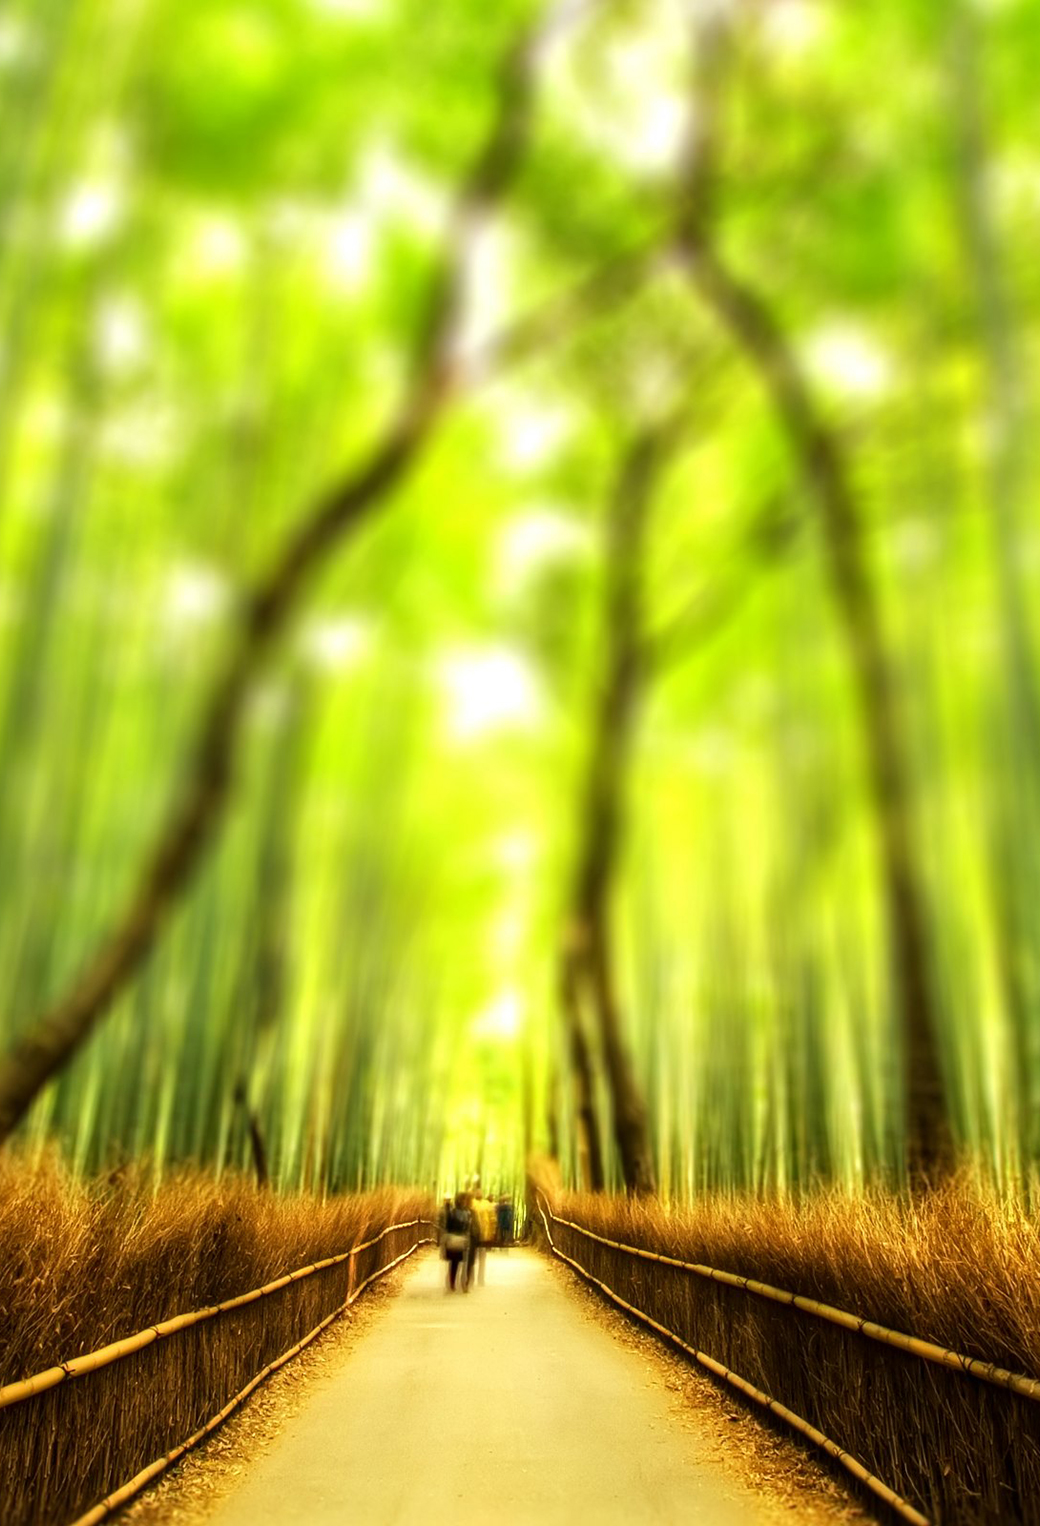 Bamboo Forest 3Wallpapers iPhone Parallax Bamboo Forest